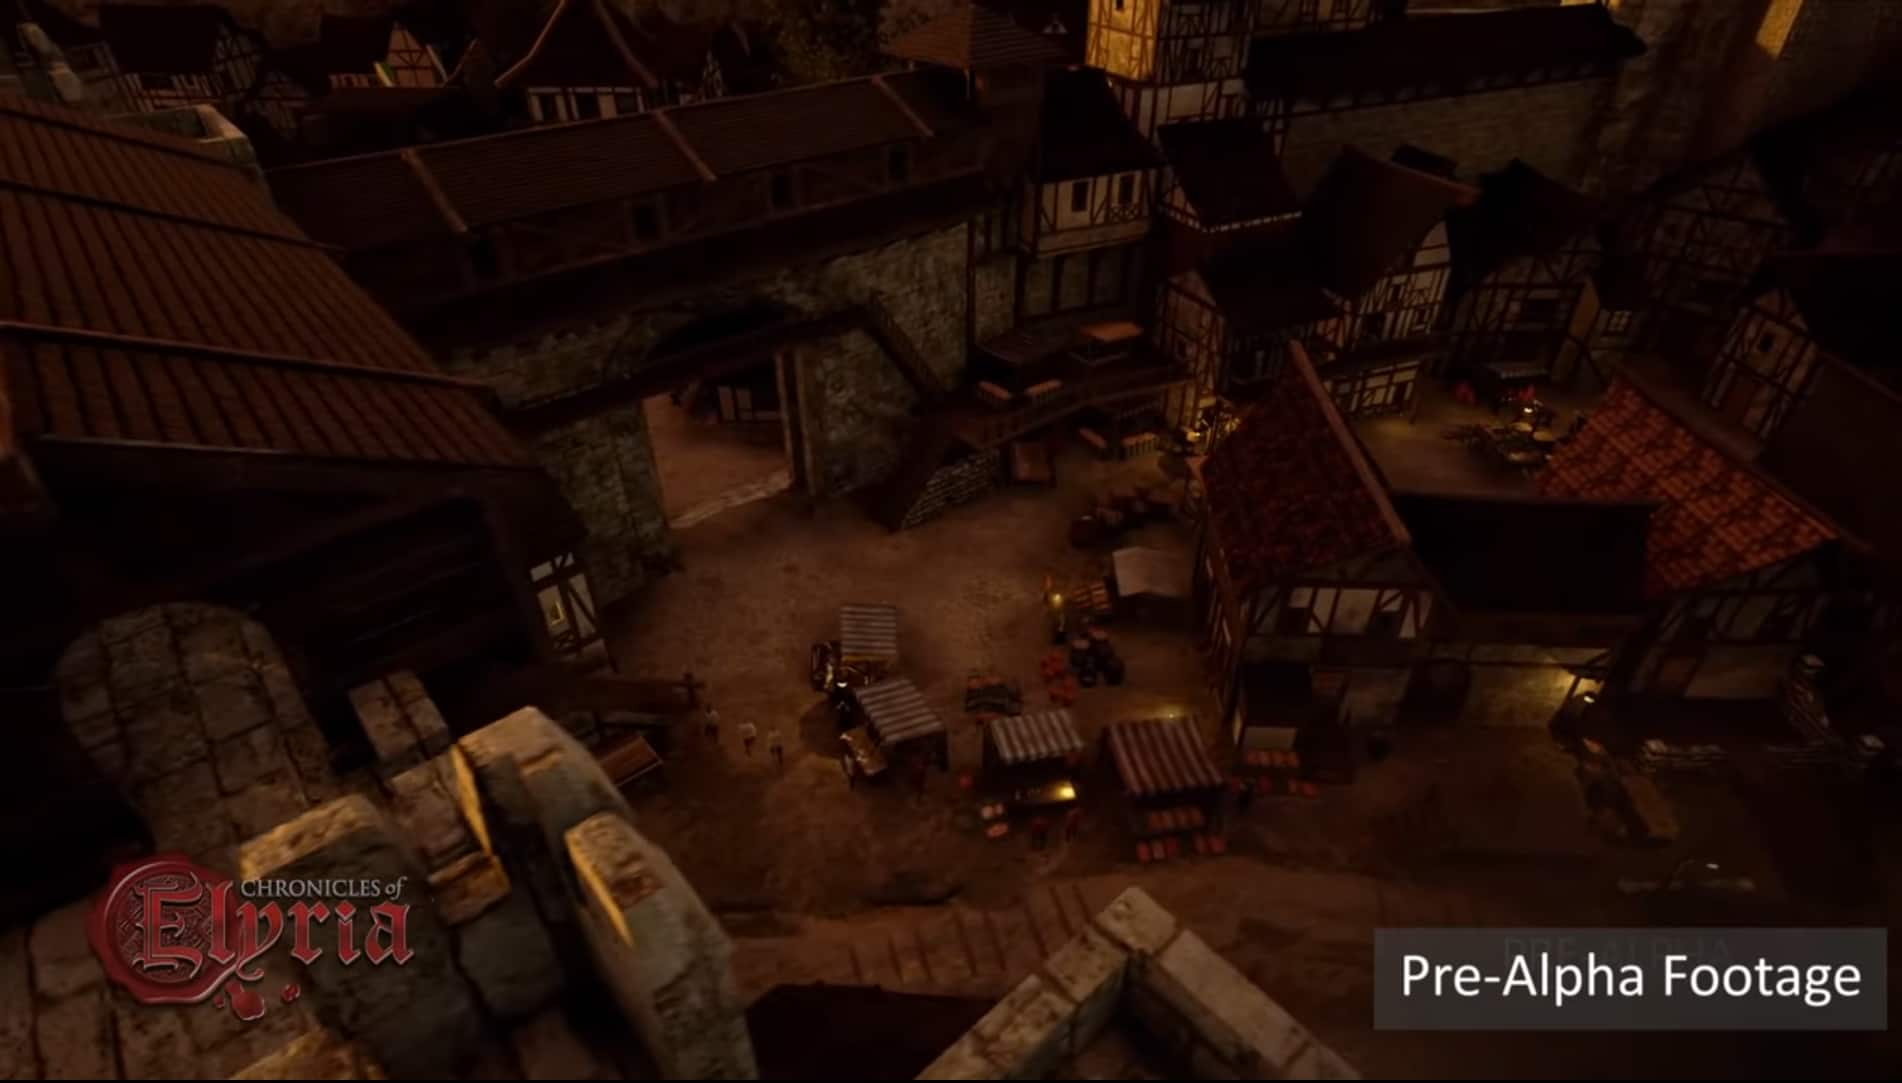 Inside Chronicles of Elyria Part 2 Provides Info On Where CoE Is headed 3